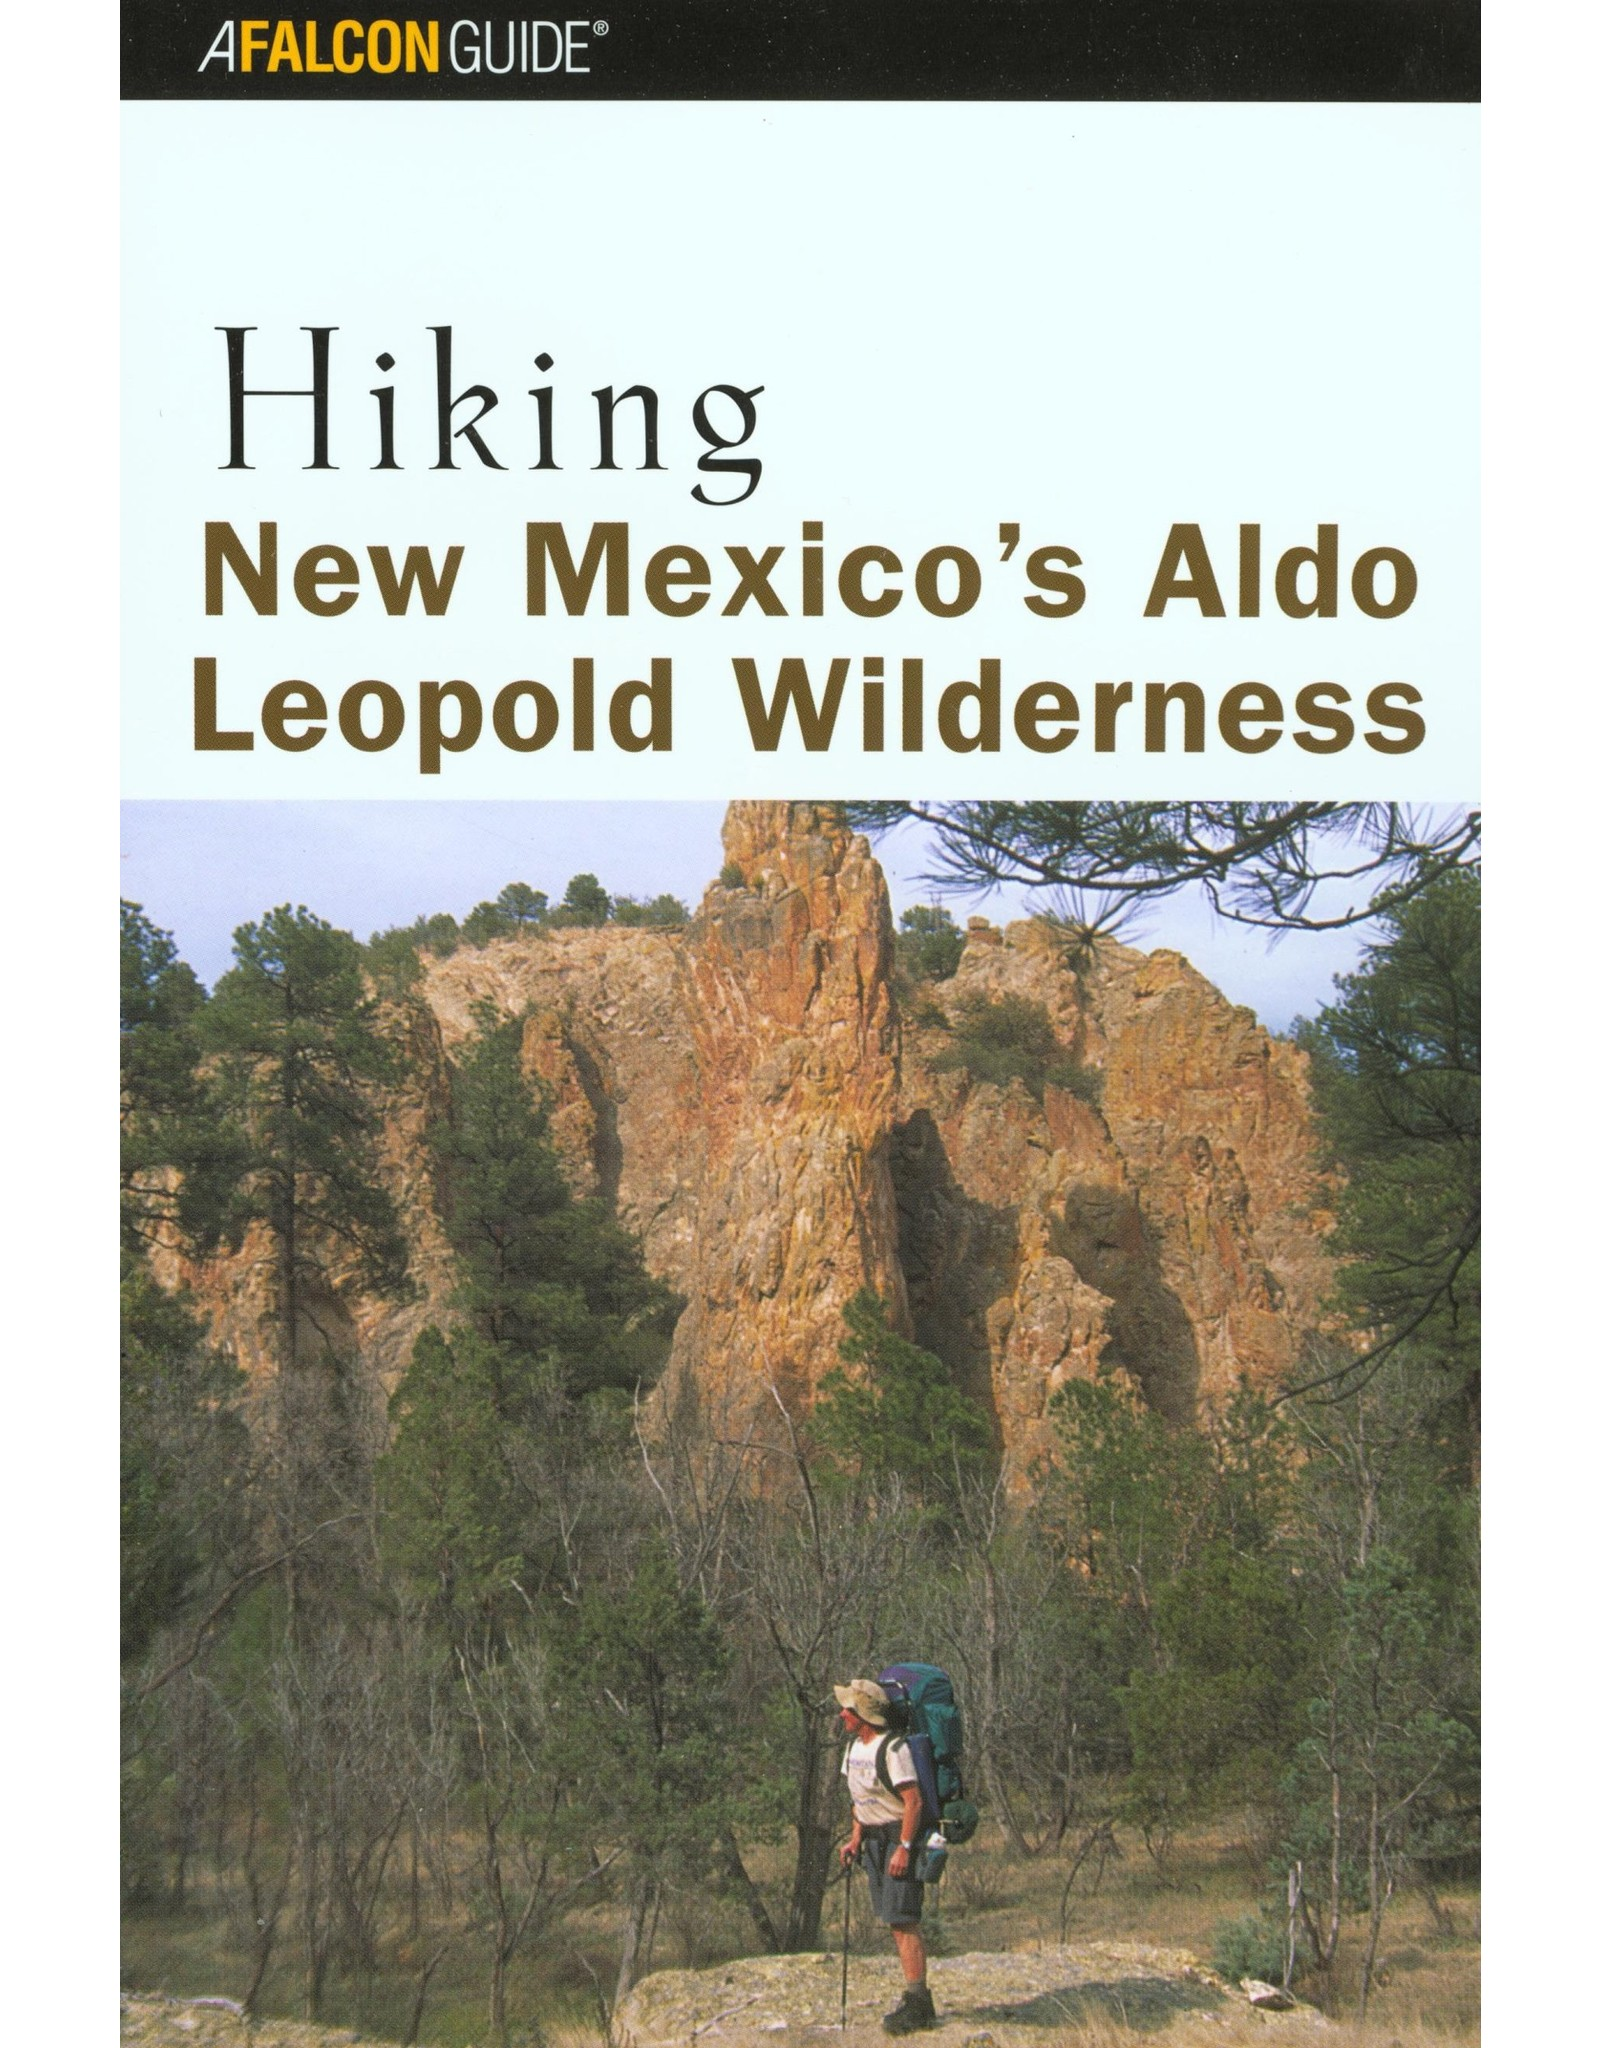 NATIONAL BOOK NETWRK Hiking New Mexico's Aldo Leopold Wilderness, Paperback – Illustrated